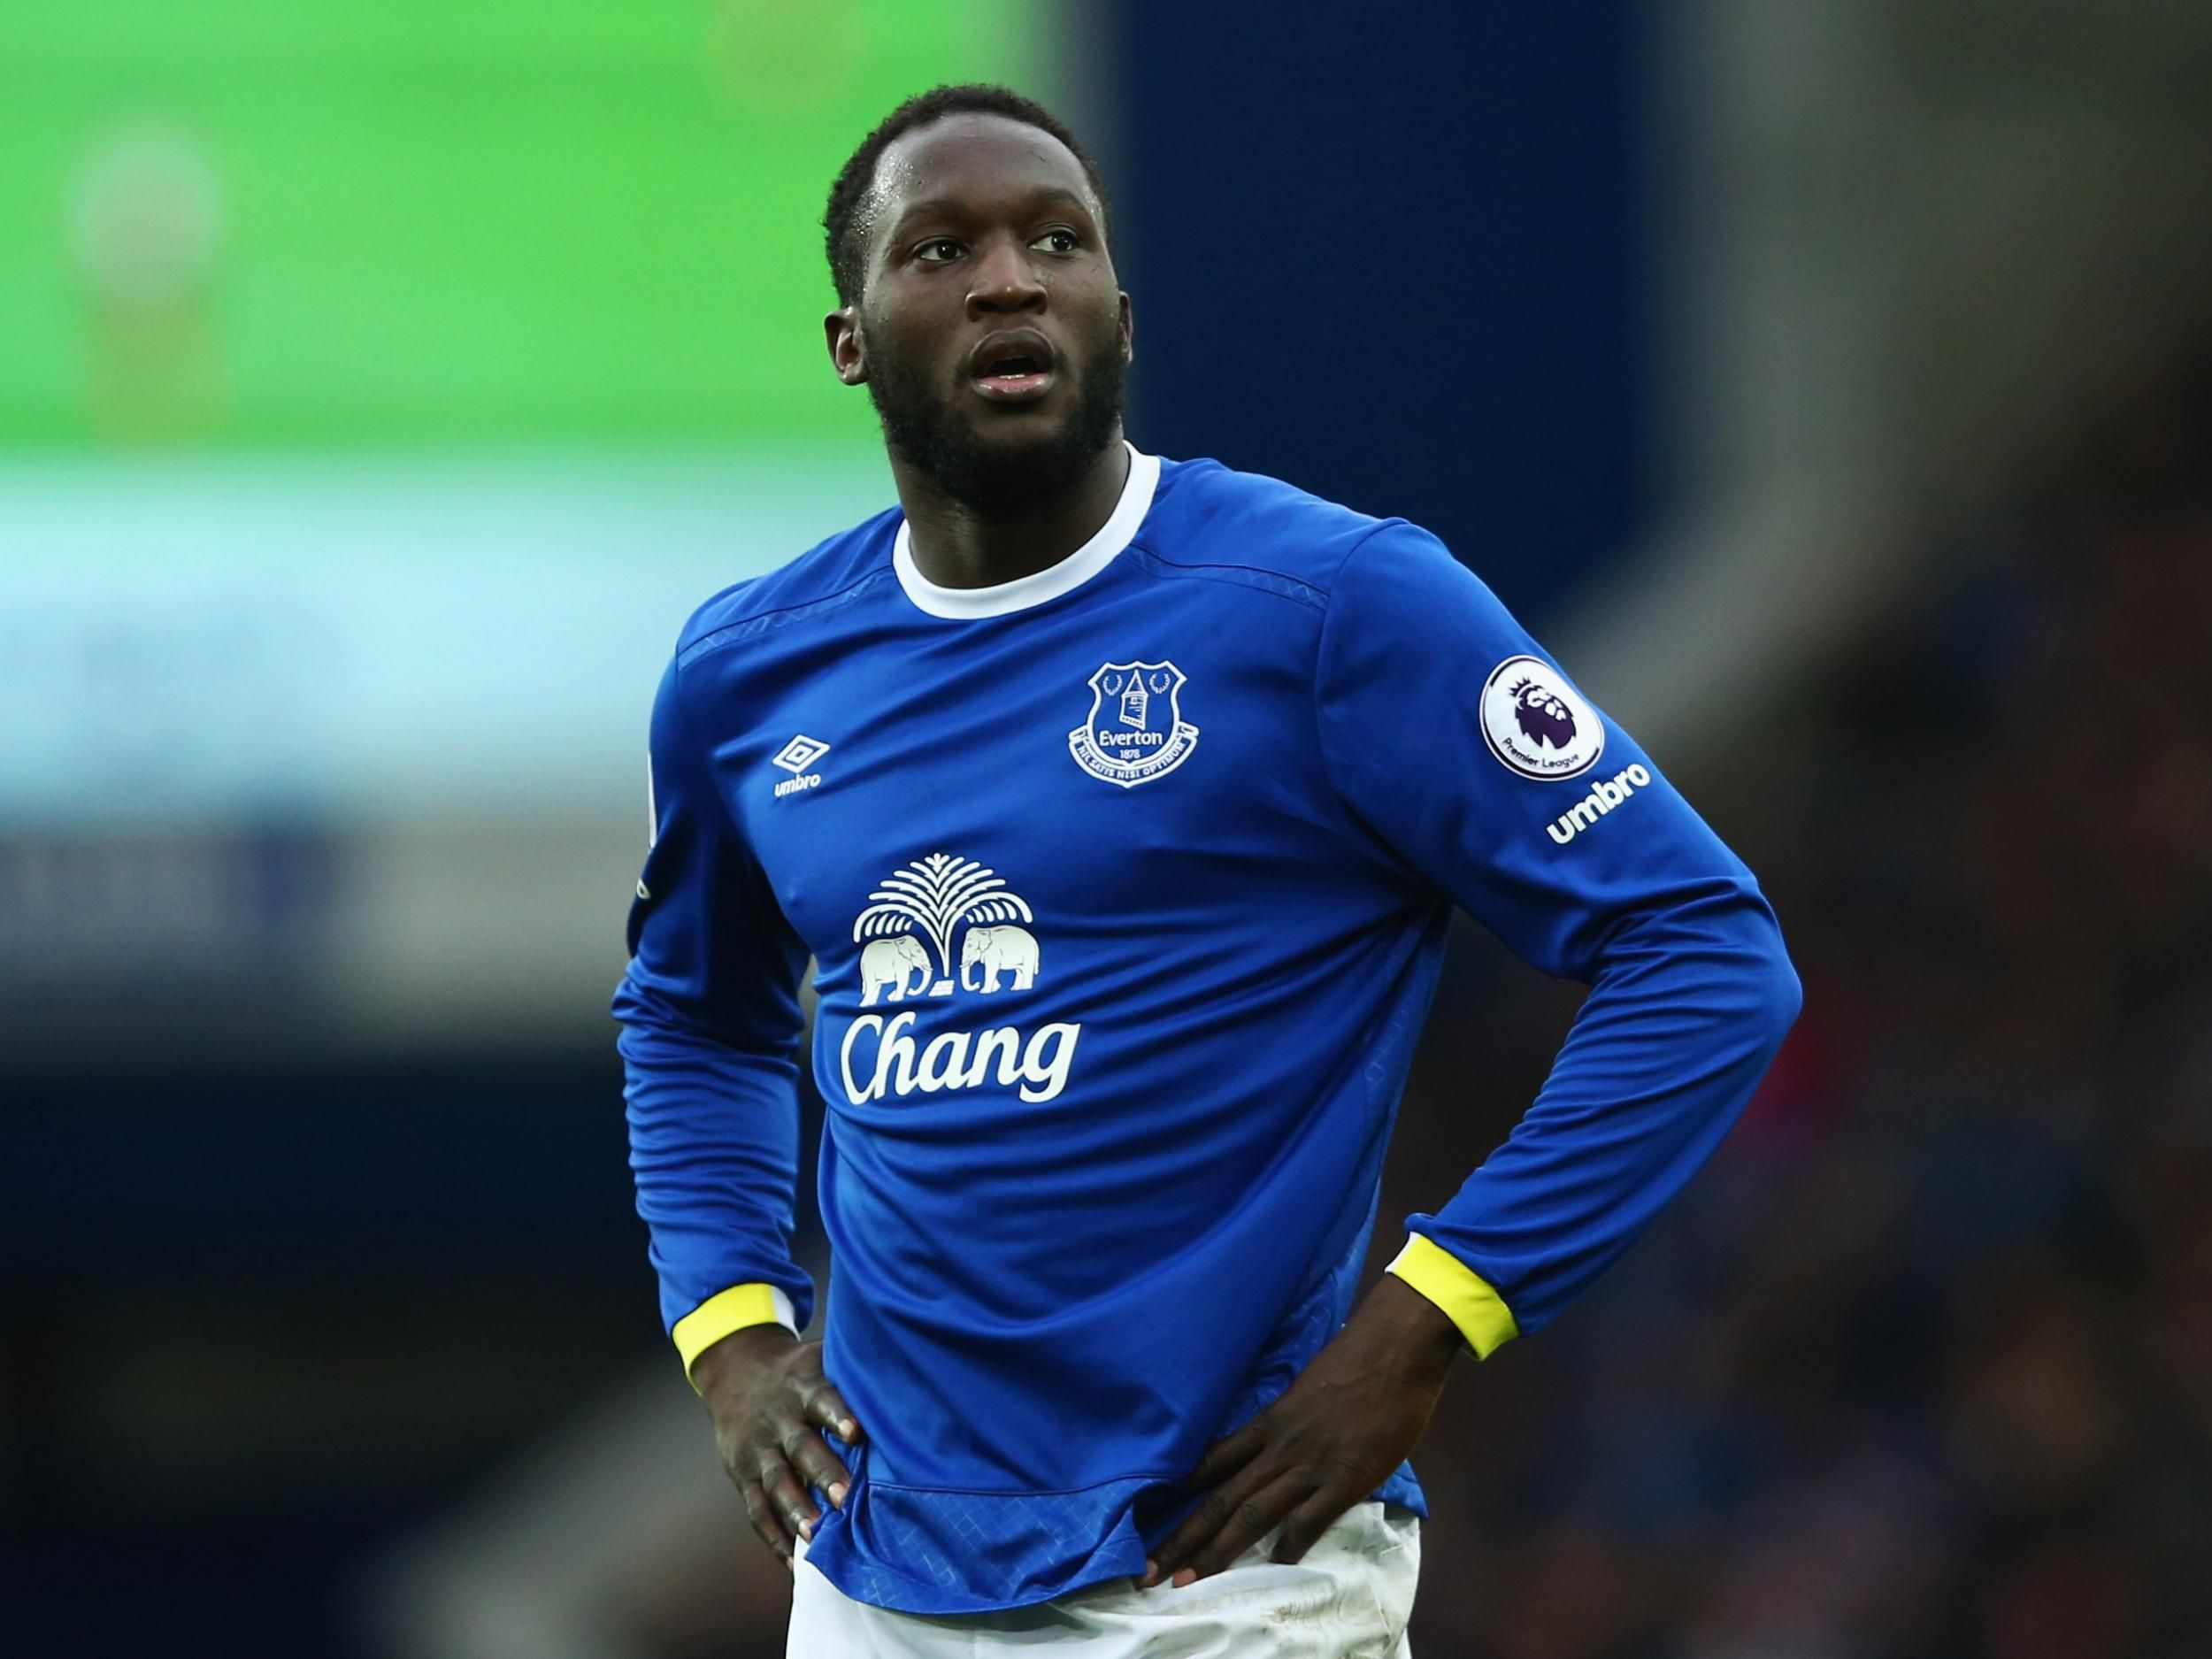 finest selection 434d3 15675 Lukaku speaks out on rumours he could return to Chelsea ...